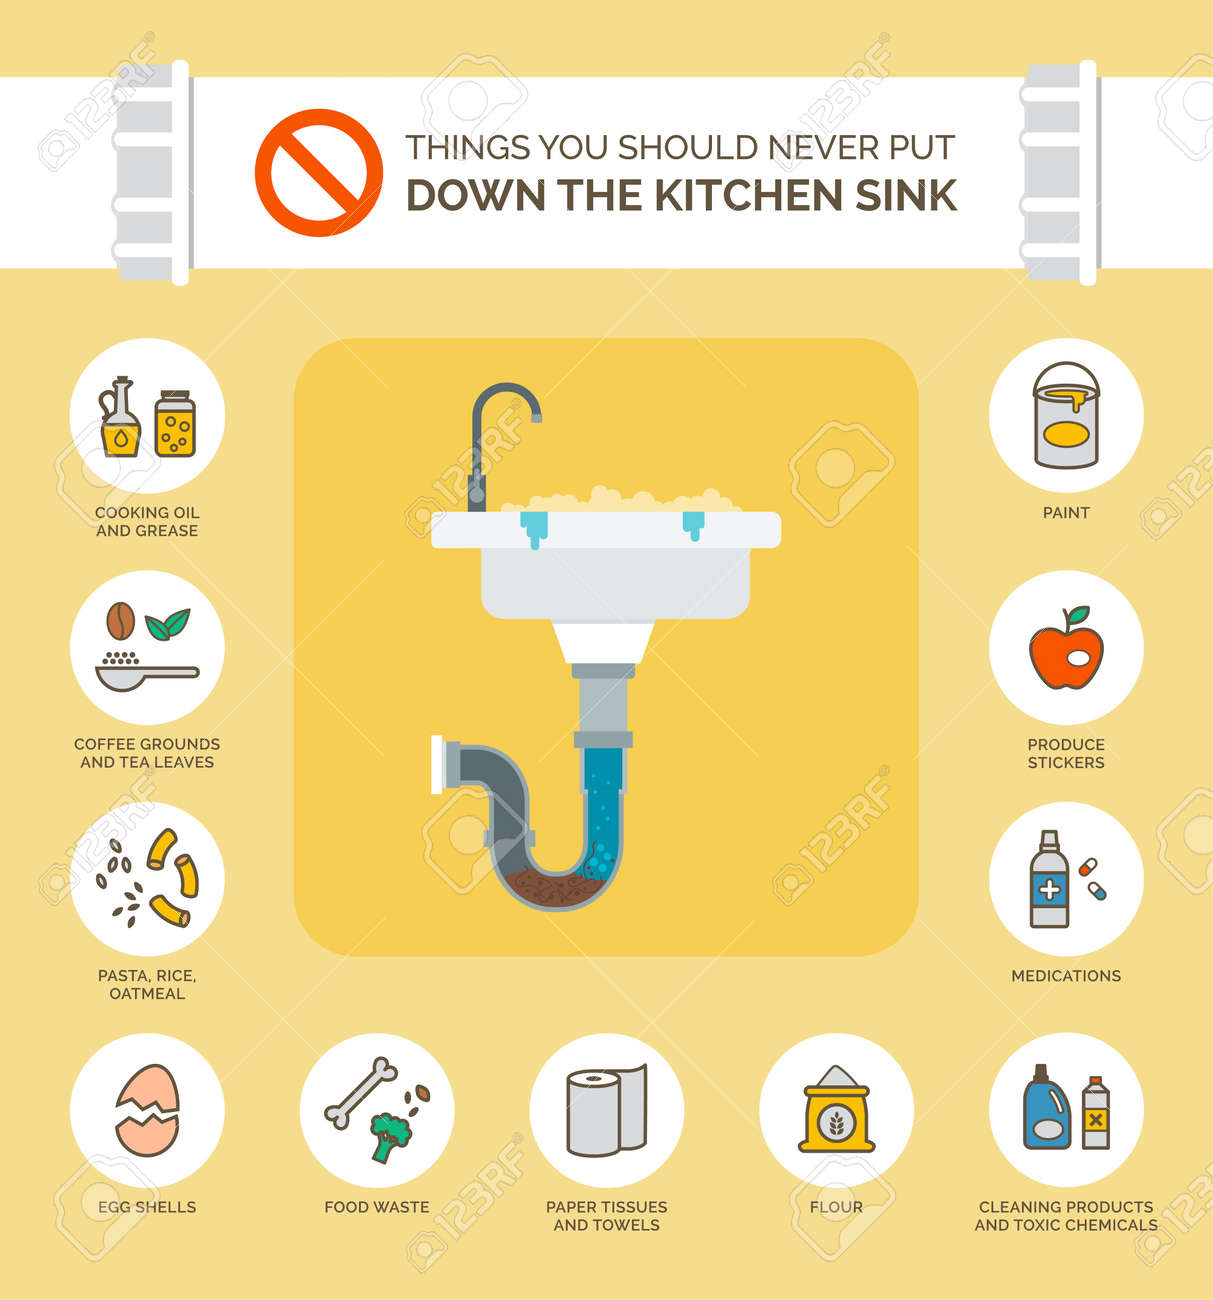 Things you should never put down the kitchen sink infographic, how to prevent clogs in your drain - 169454615